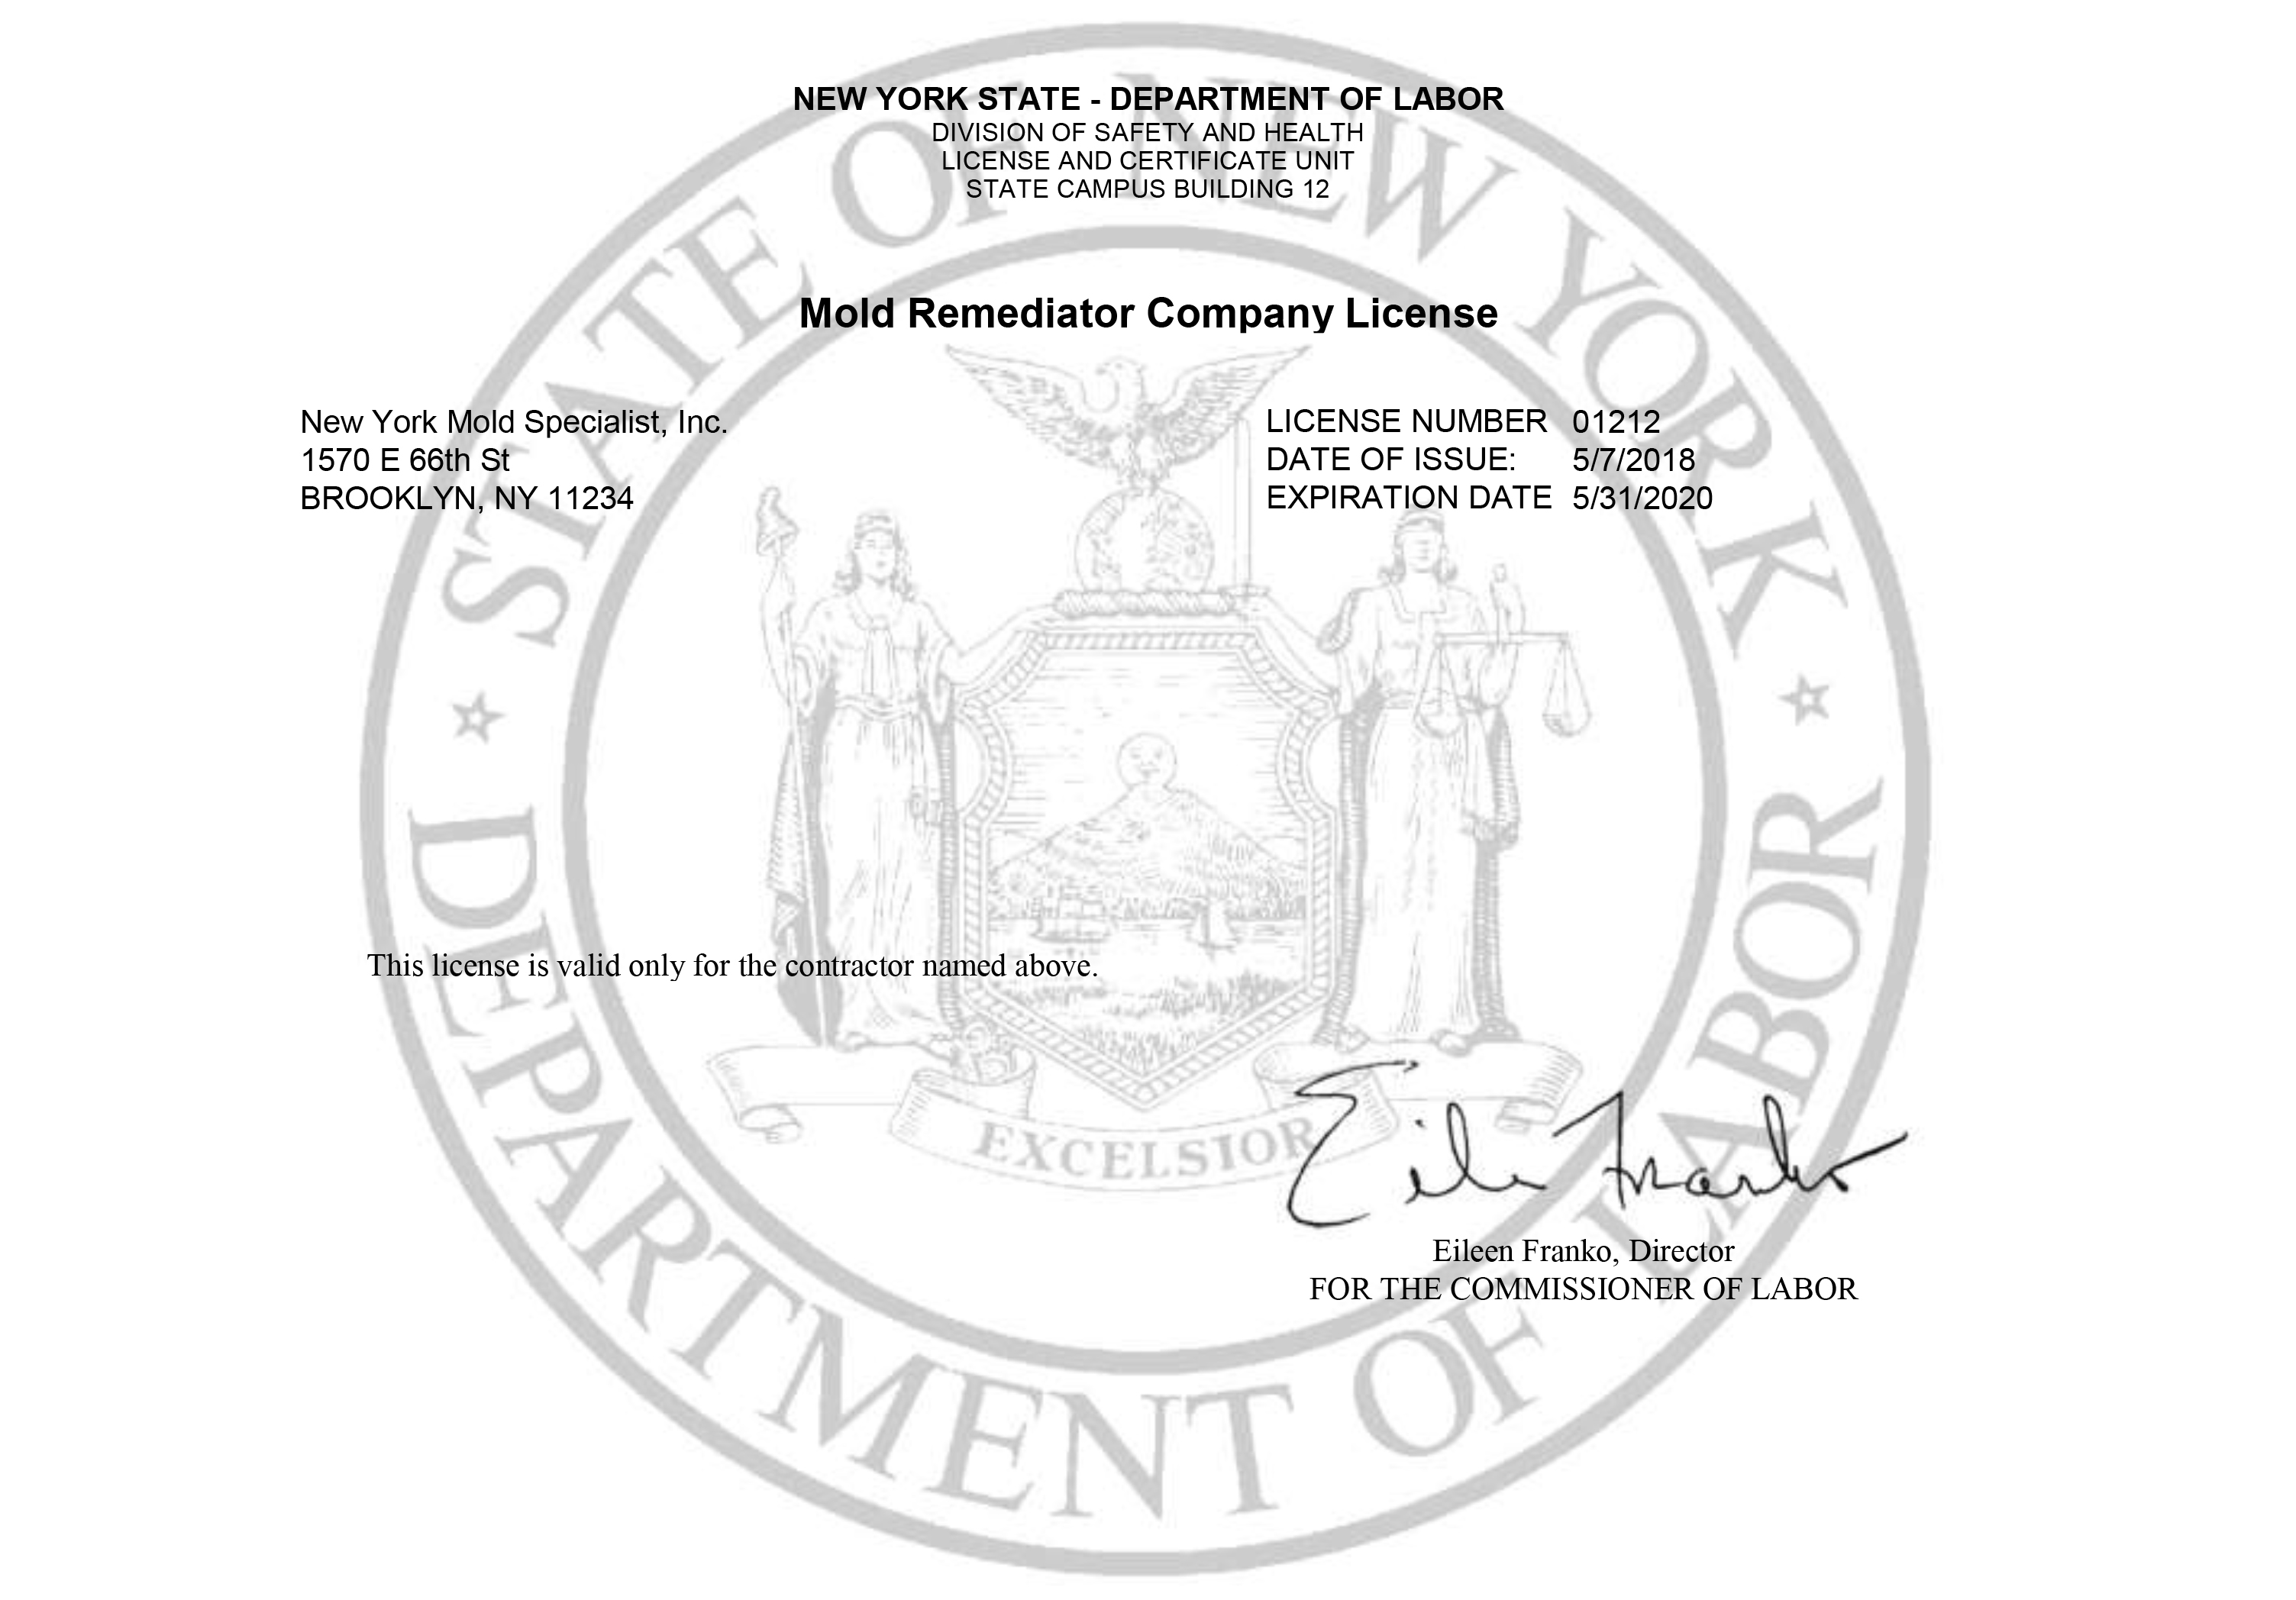 Mold Remediator Company License